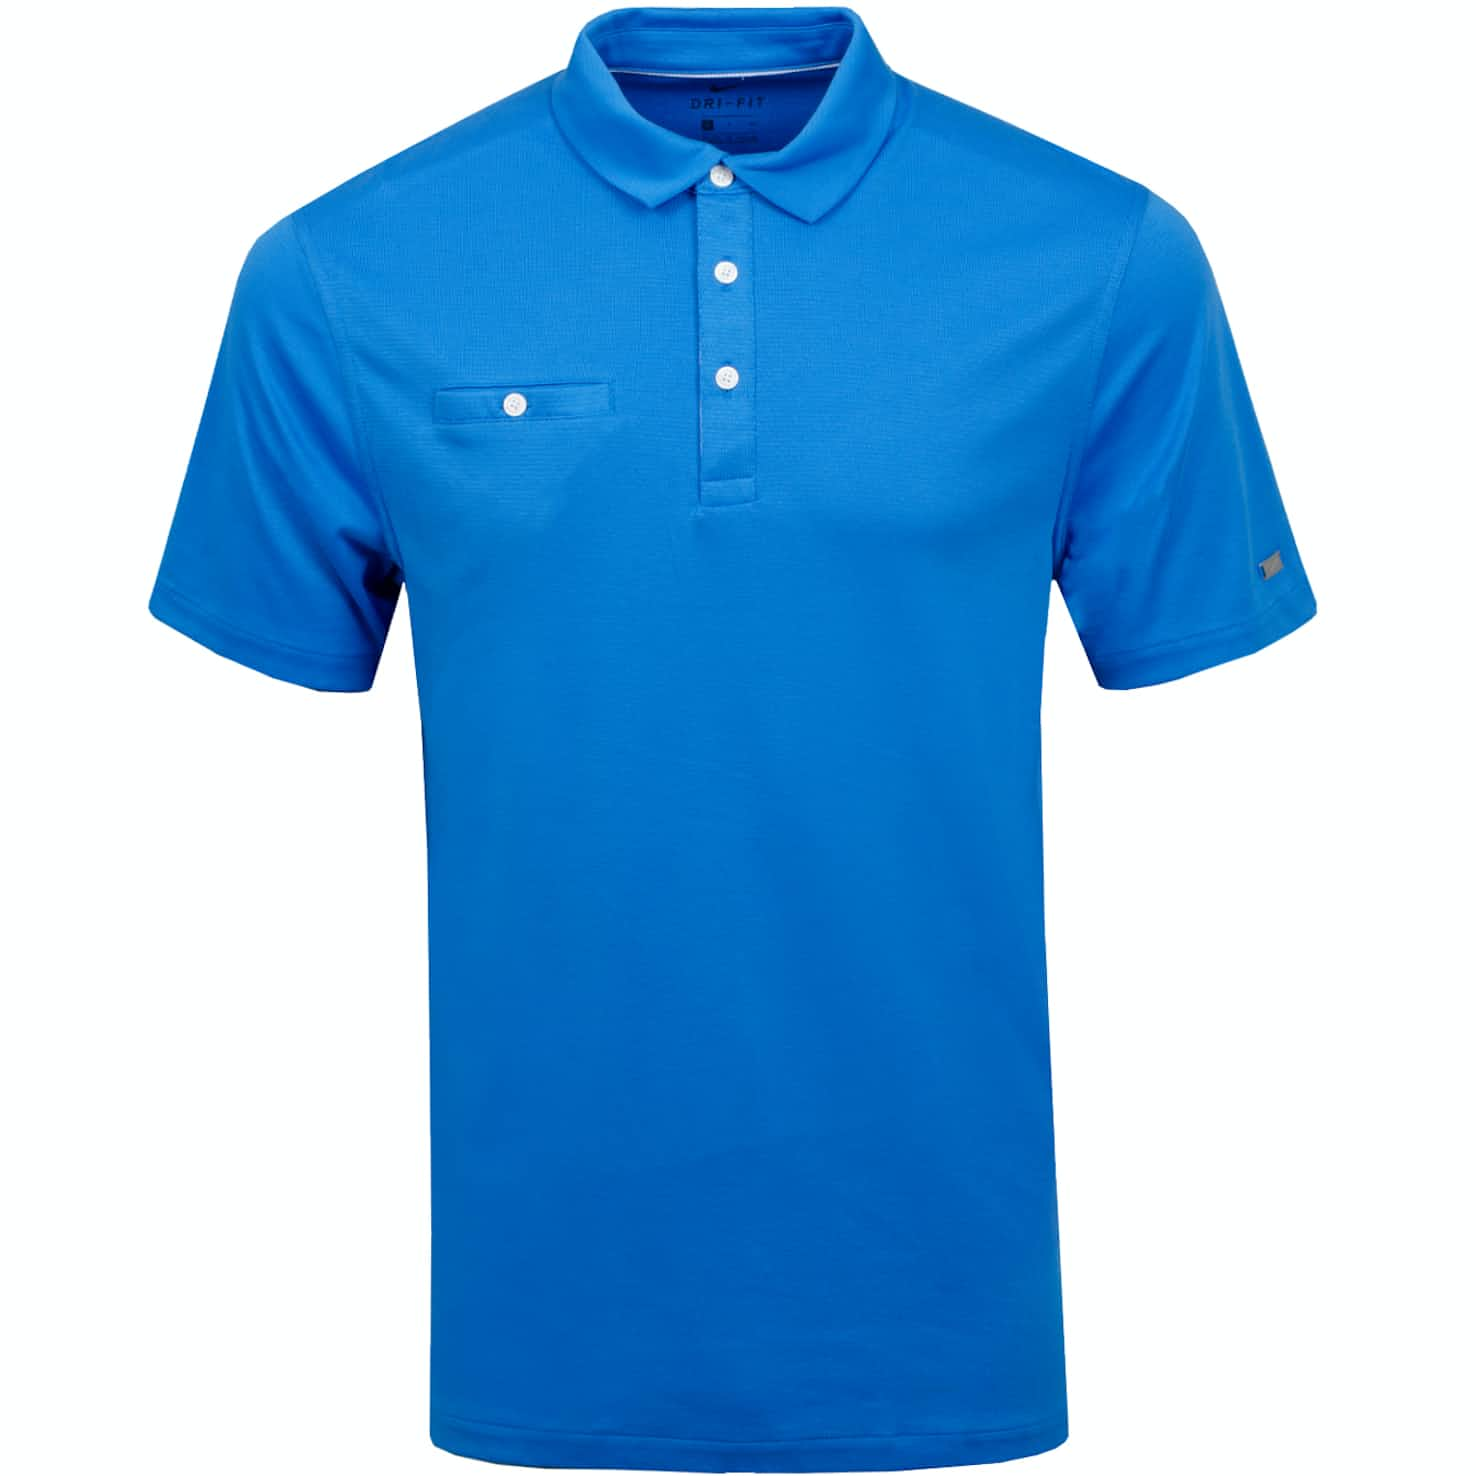 Dri-Fit Player Solid Polo Light Photo Blue/Brushed Silver - AW19